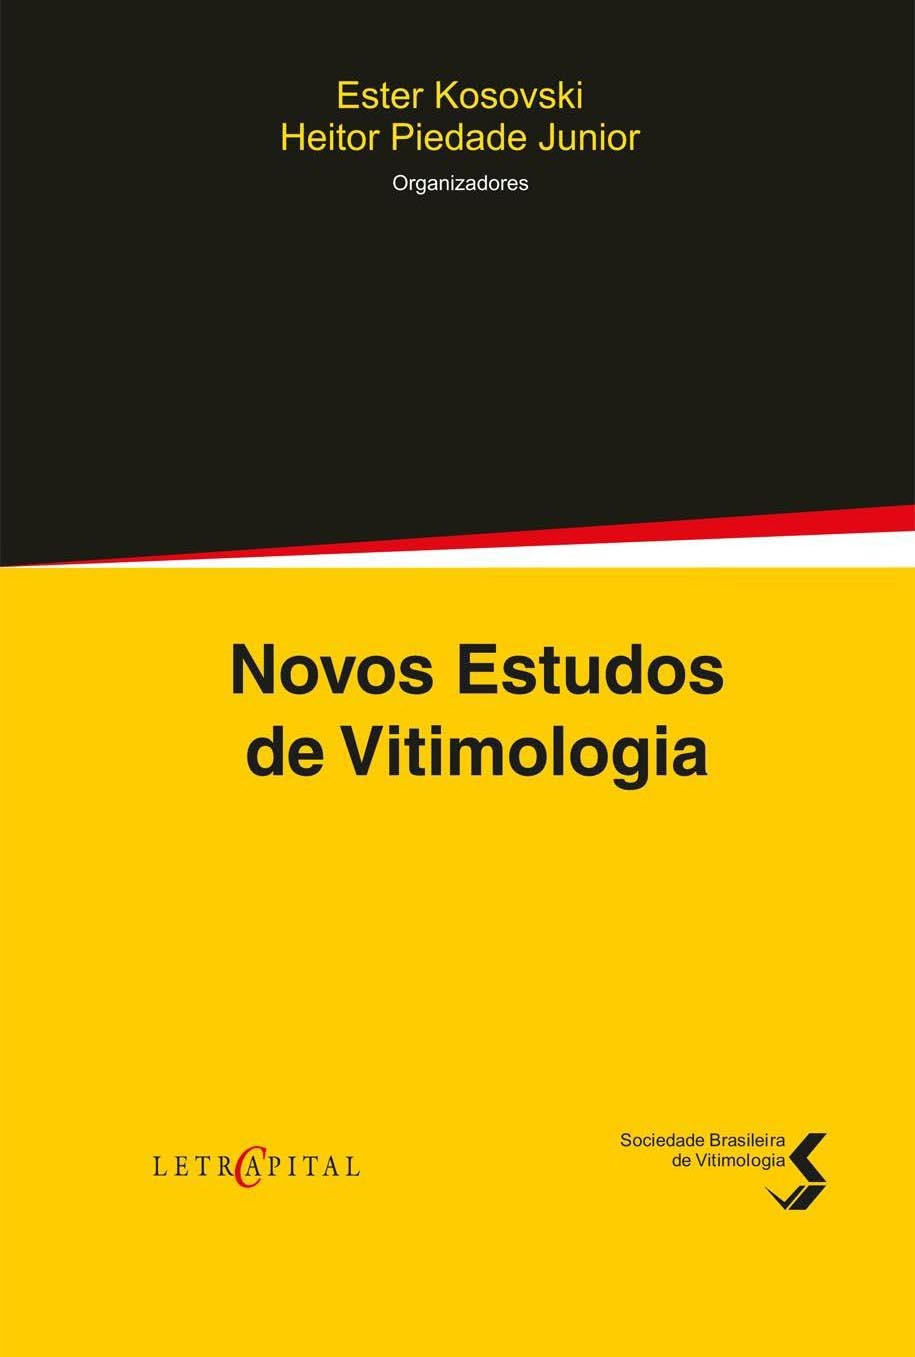 Novos Estudos de Vitimologia